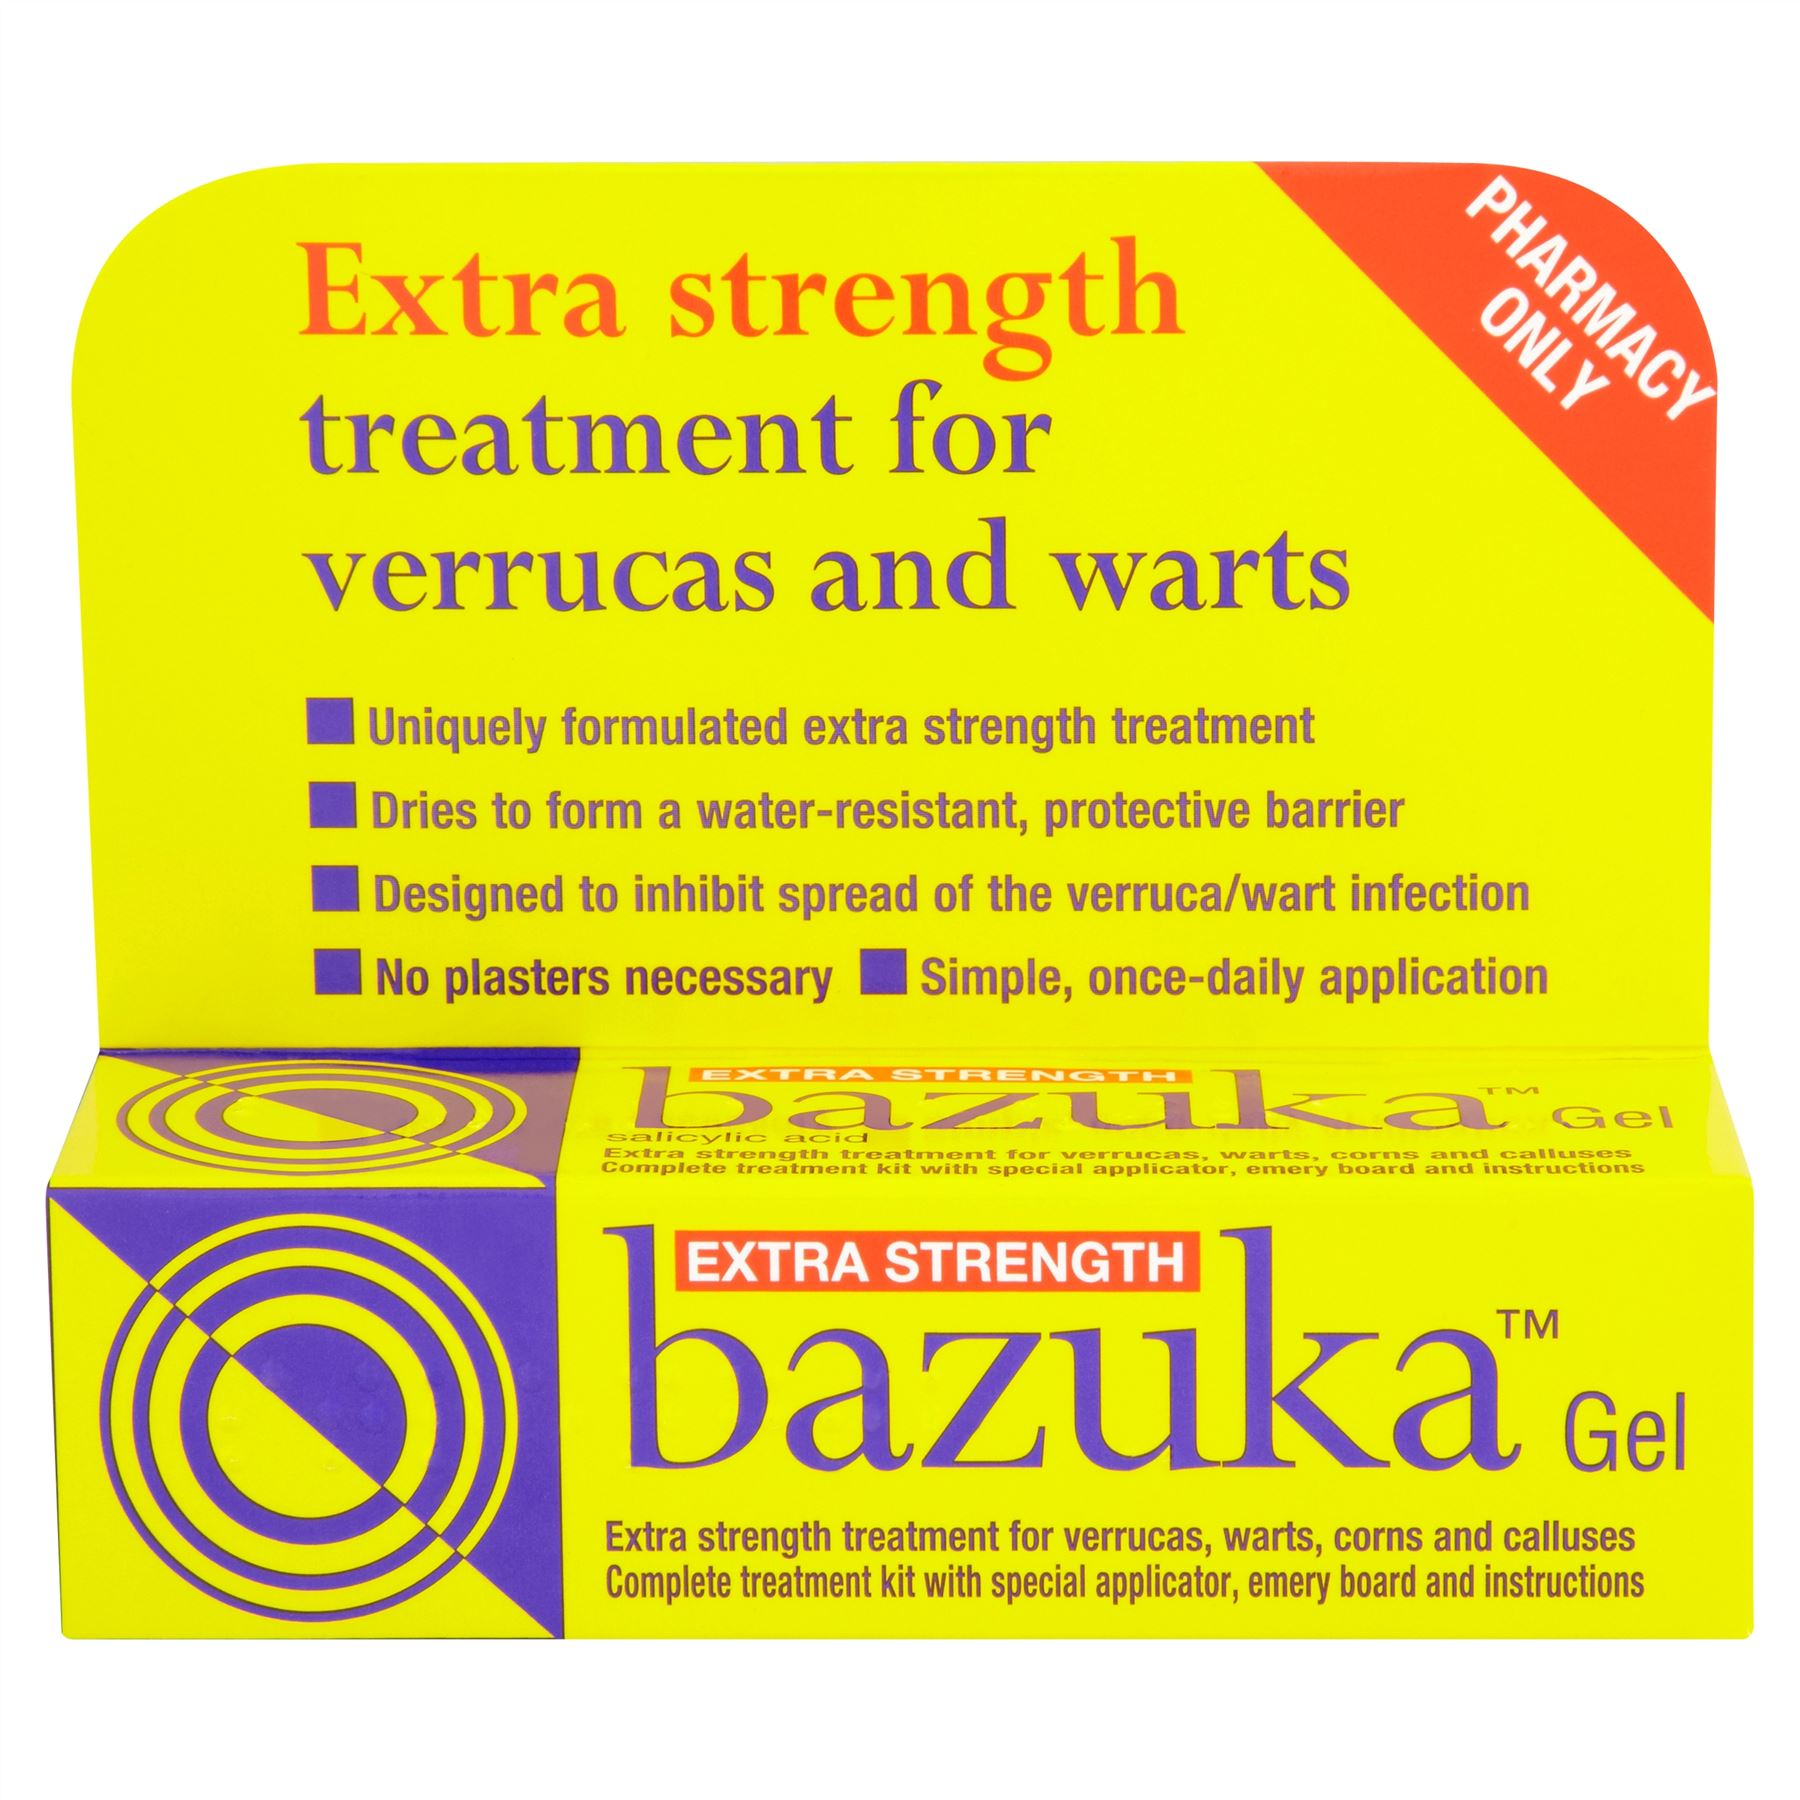 Bazuka-Treat-verrucas-and-warts-fast thumbnail 9